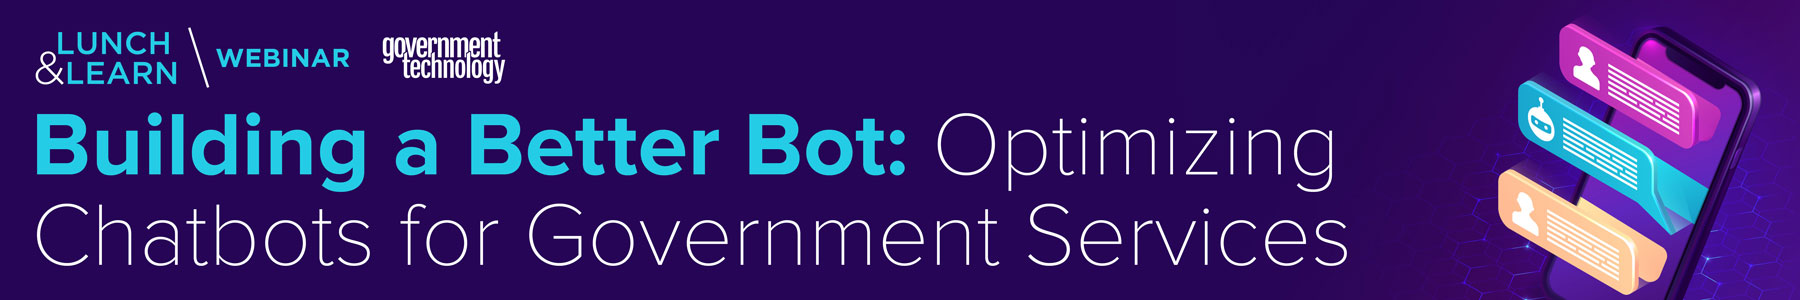 Building a Better Bot: Optimizing Chatbots for Government Services